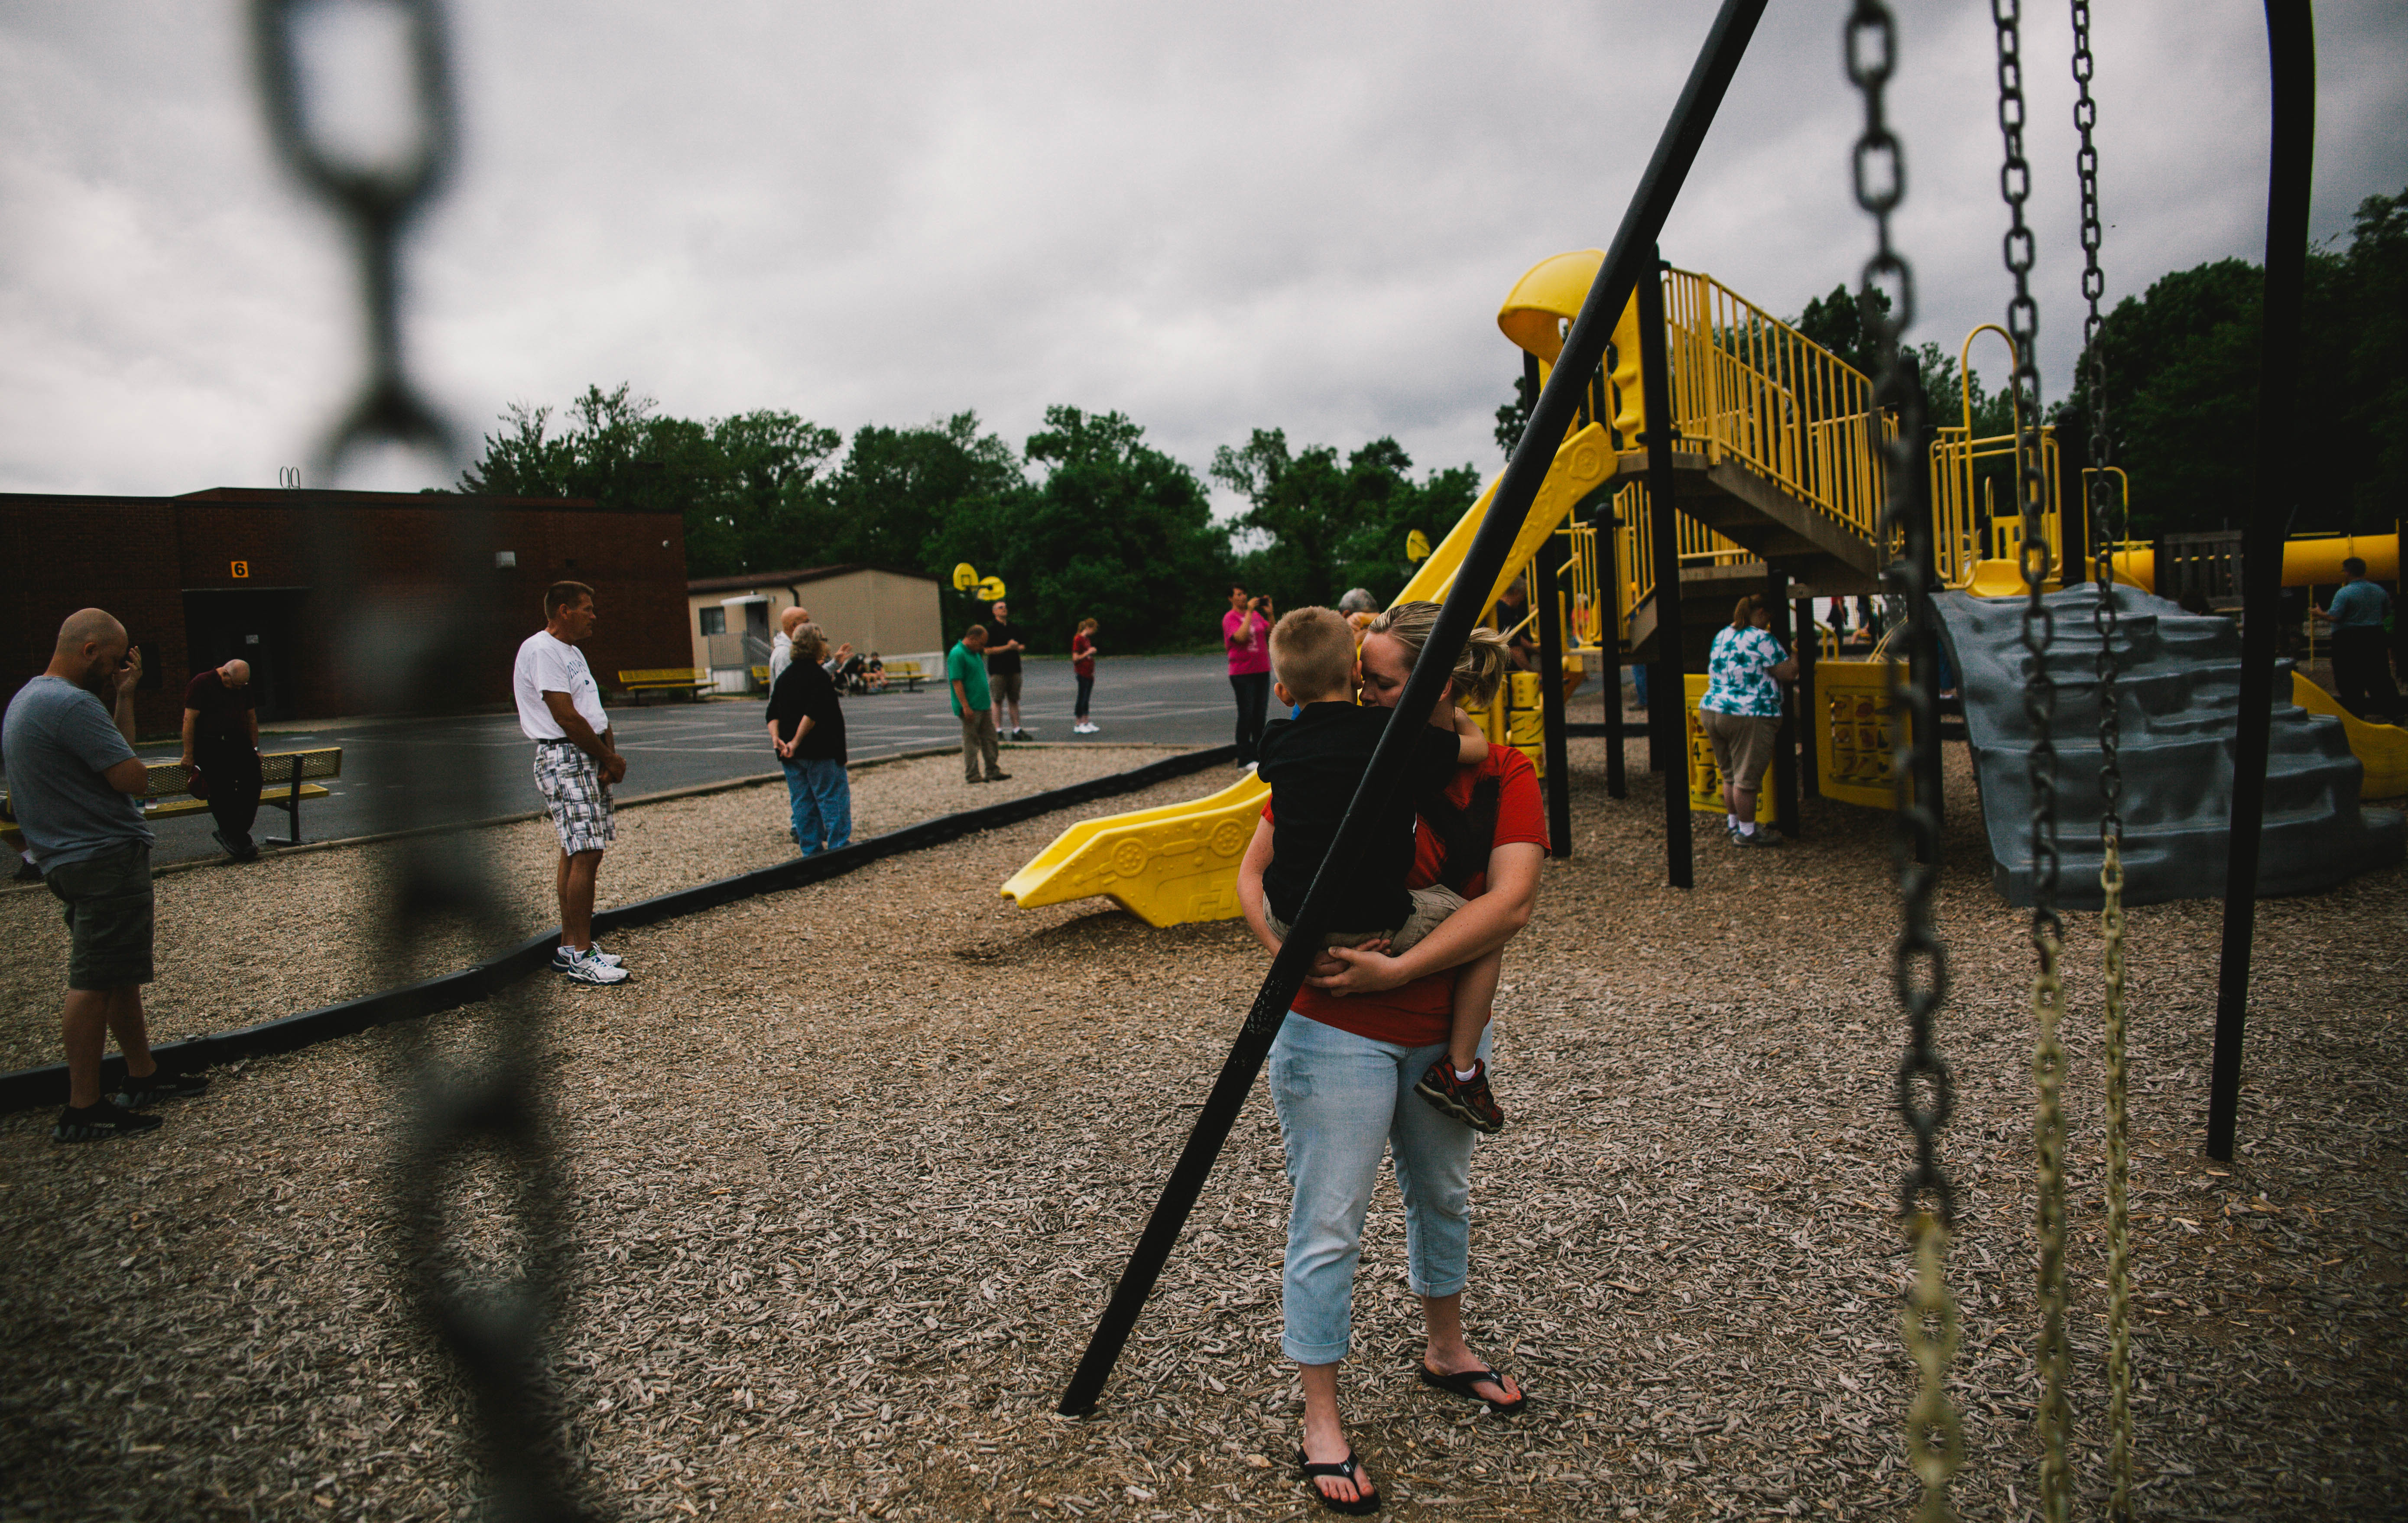 A woman holds her child next to a set of swings, as a circle of people pray around the edge of the playground.